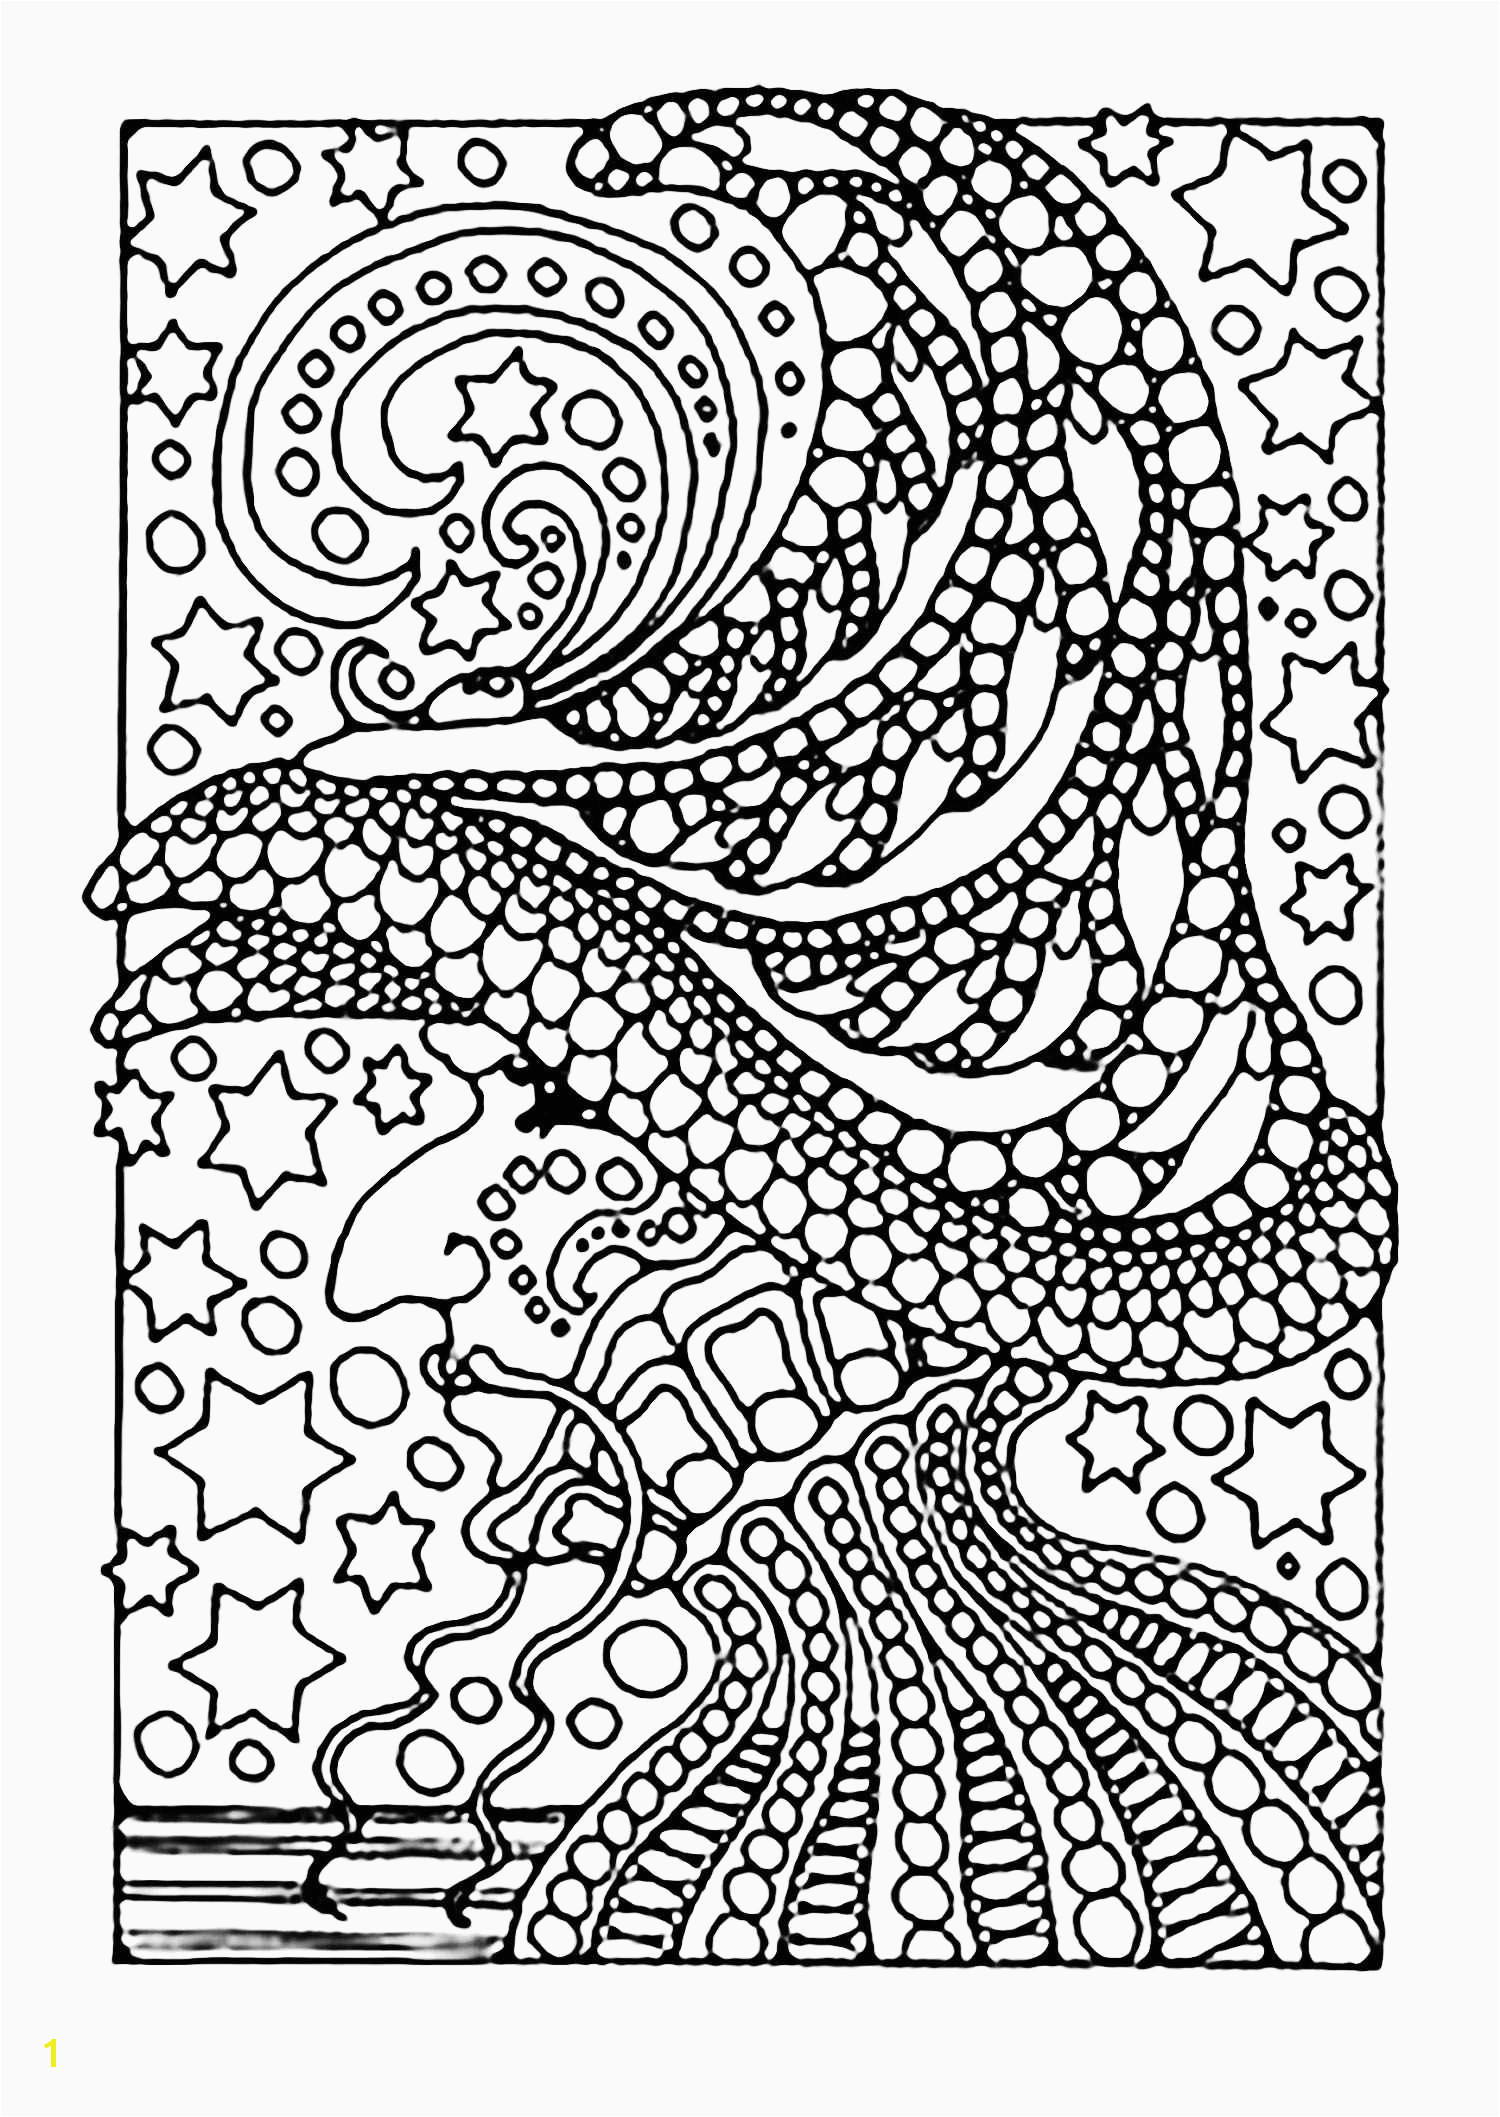 Kids Coloring Clip Art Kids Coloring Pages for Boys 18inspirational Coloring Sheets for